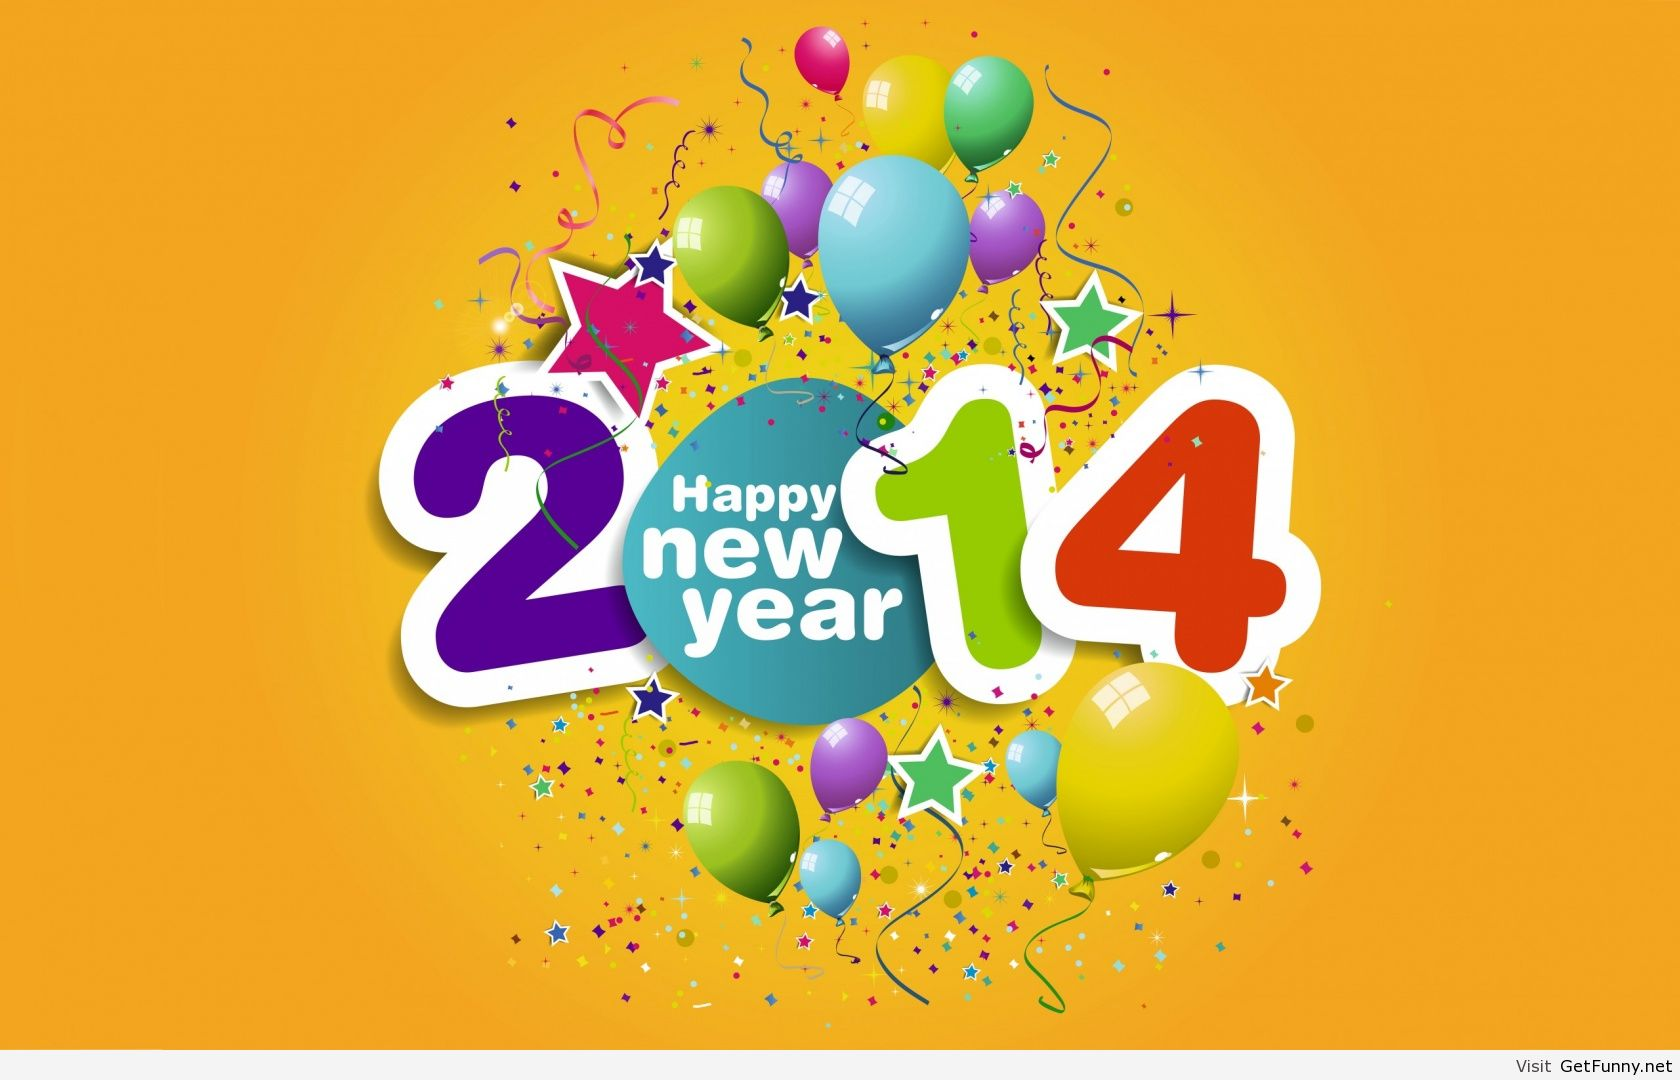 happy new year 2014 hd background phonejpg